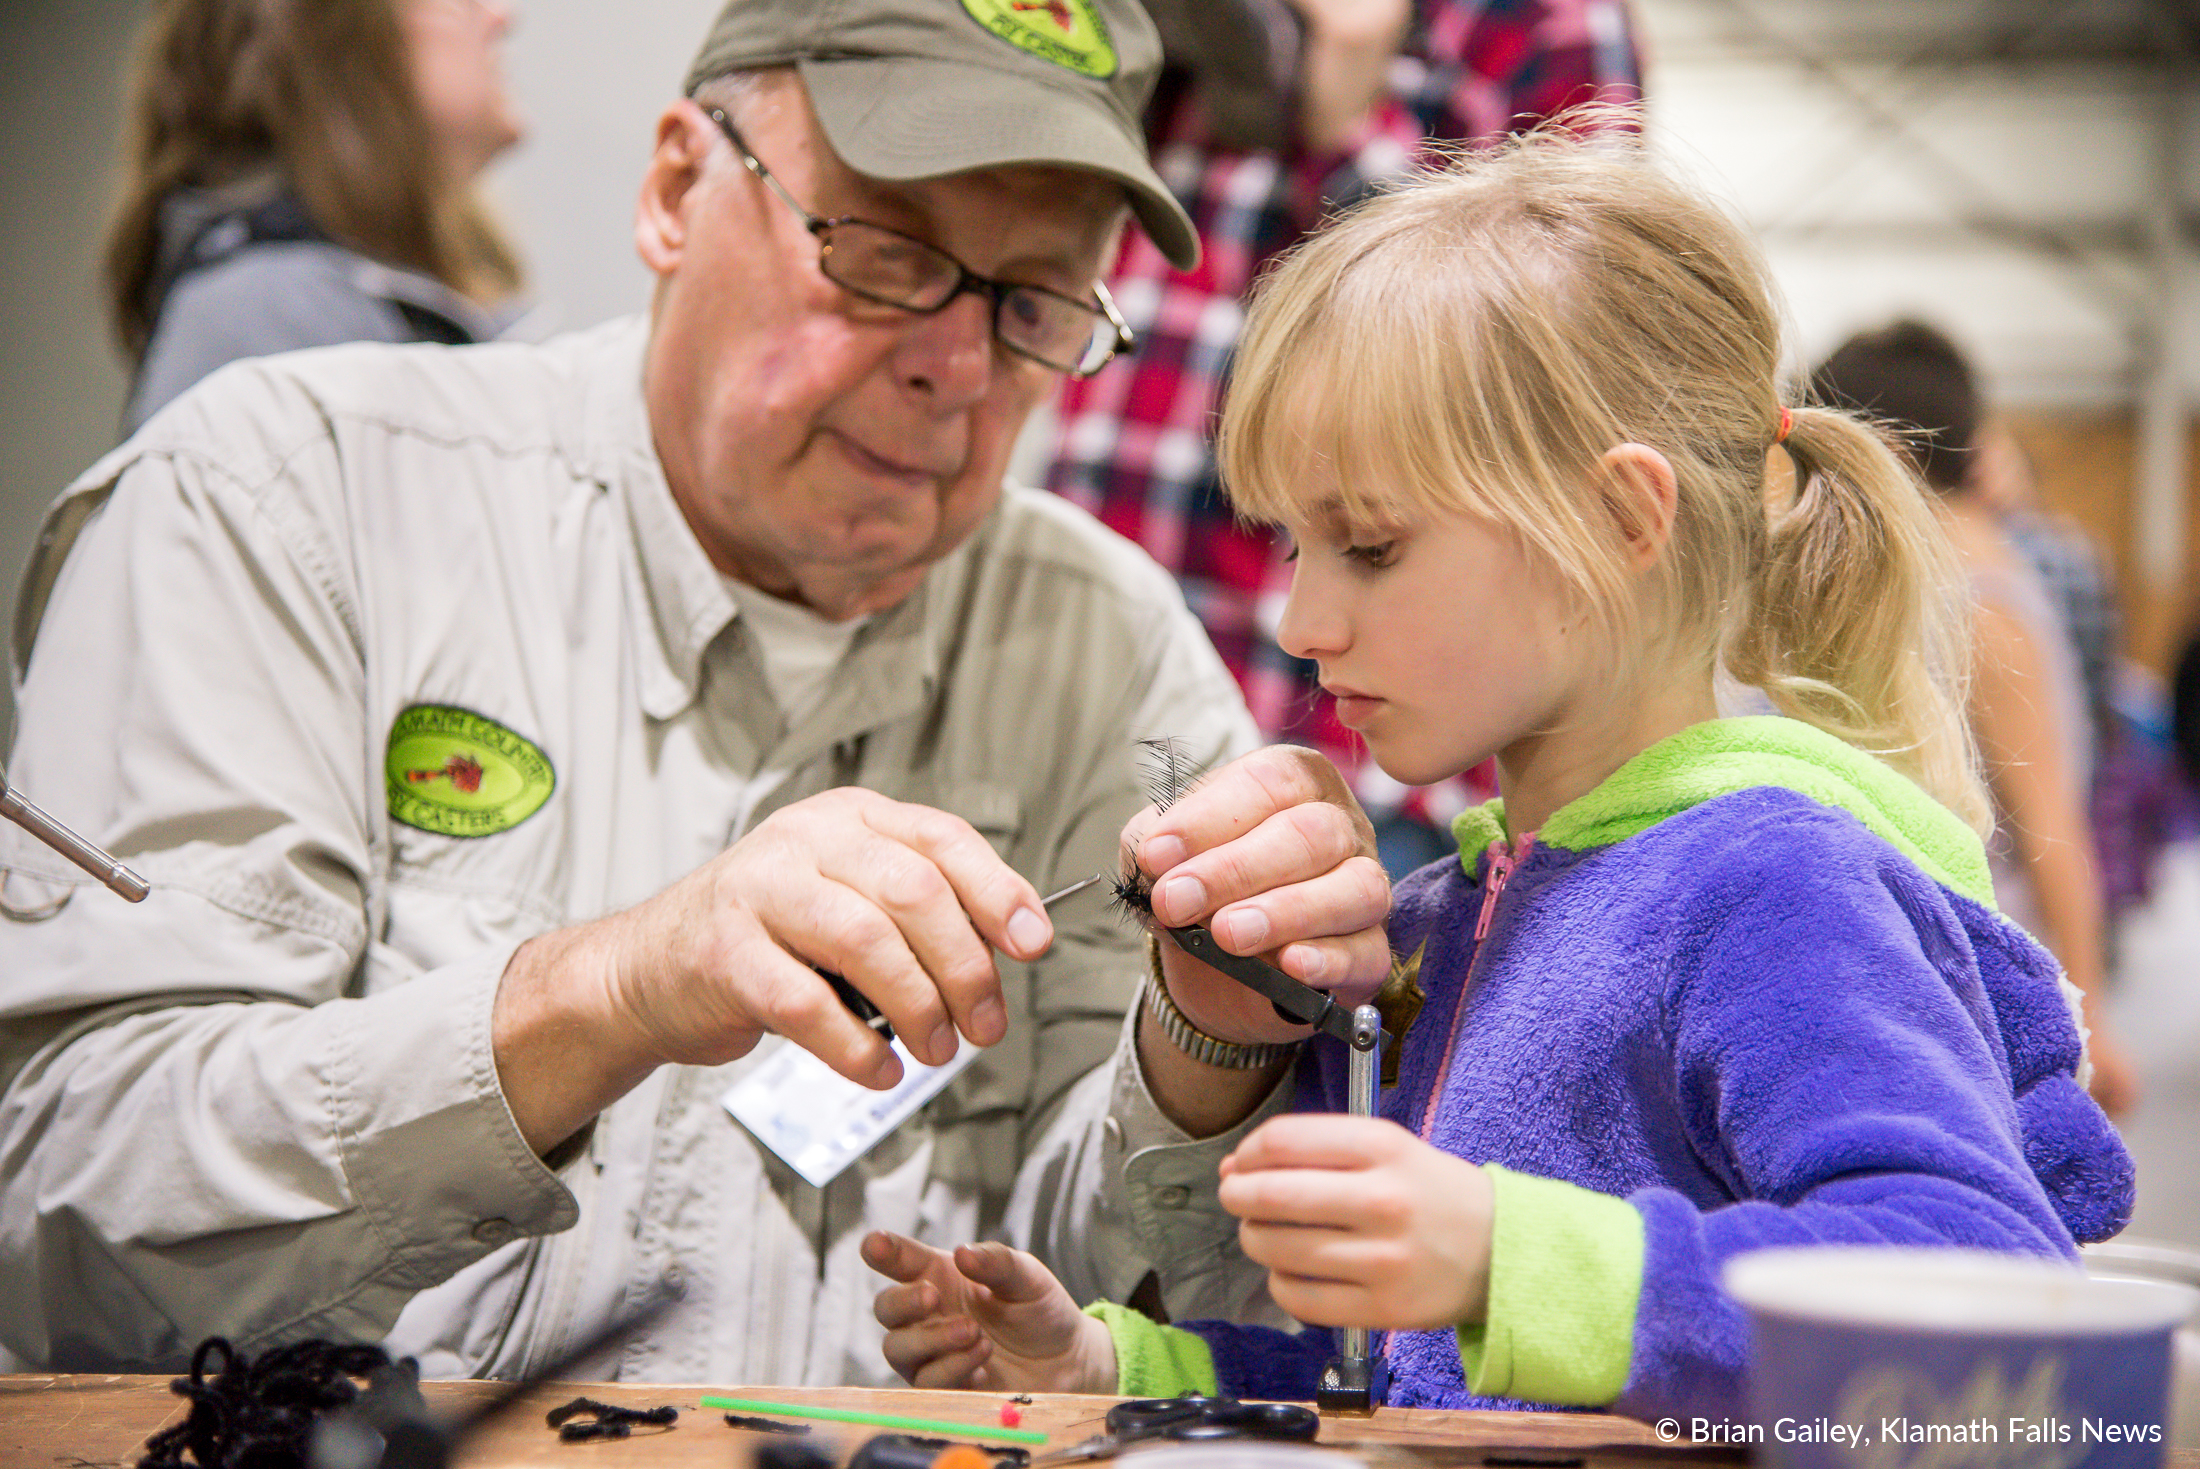 Lily Tompkins and Dick Siemens with the Klamath County Flycasters. Create a unique and beautiful fishing fly at PLAY Outdoors, Klamath Falls, Ore. - January 20, 2018 (Brian Gailey)